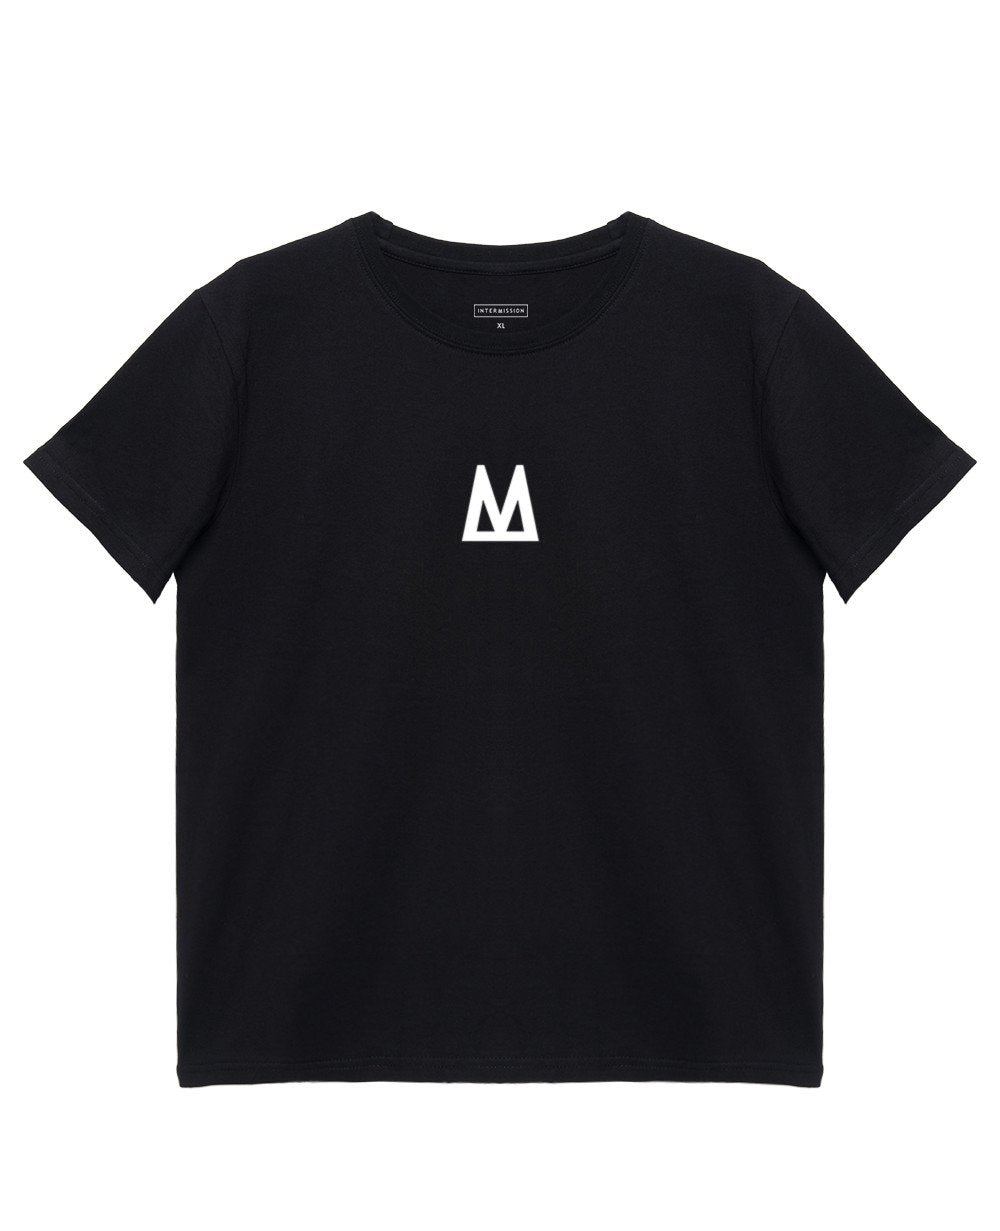 Logo T-Shirt in Black - T-Shirts - INTERMISSION - BRANMA